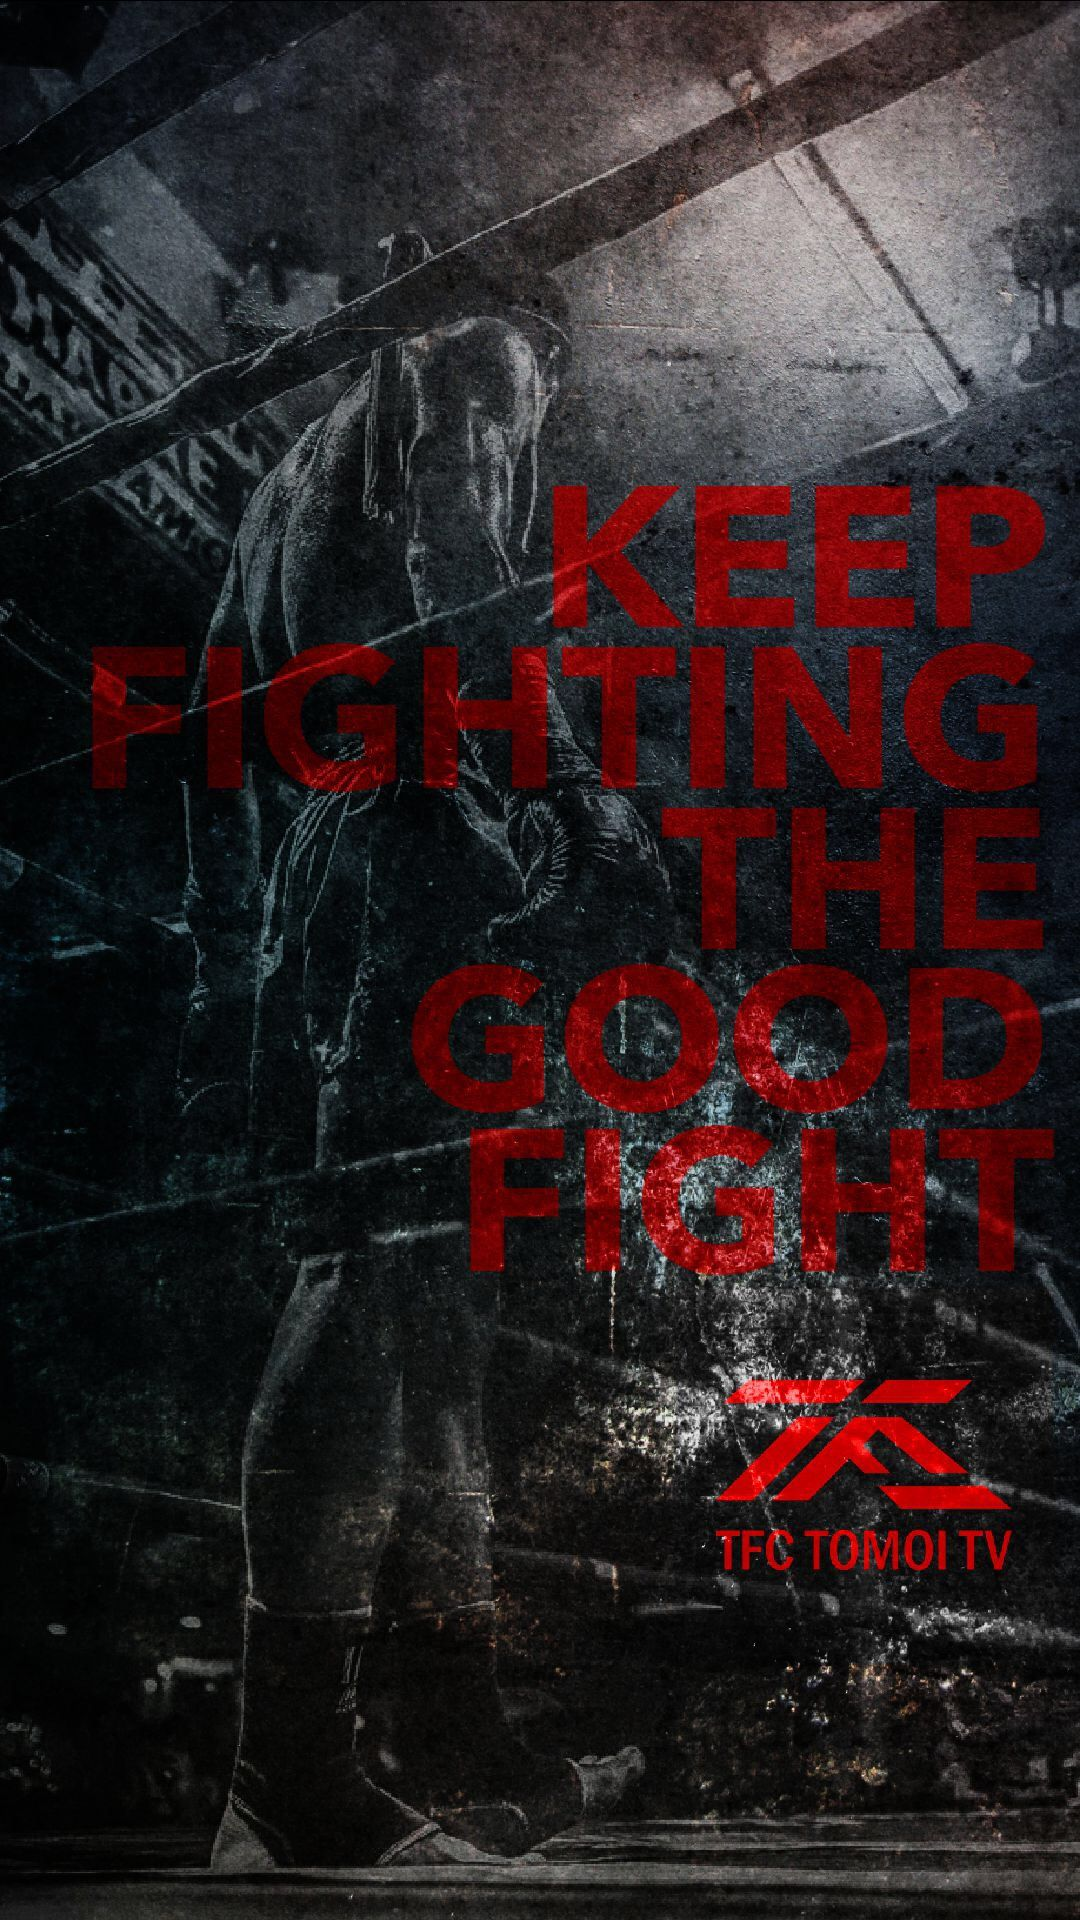 Pin By Tomoi Tv On Poster Art Poster Art Fight The Good Fight Art